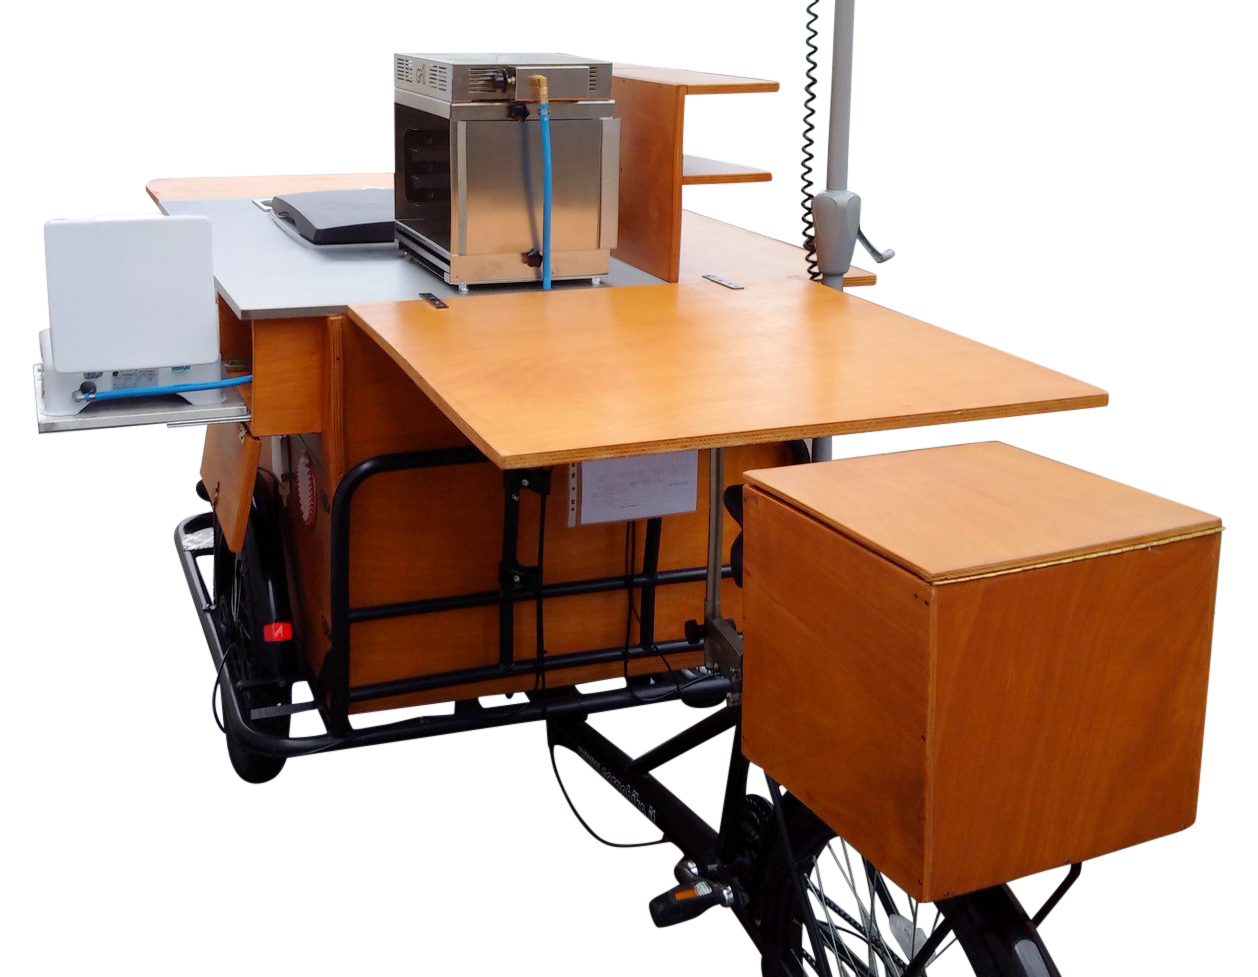 Street_Food_Bike_Cargo_Bike_Banco_Legno_9